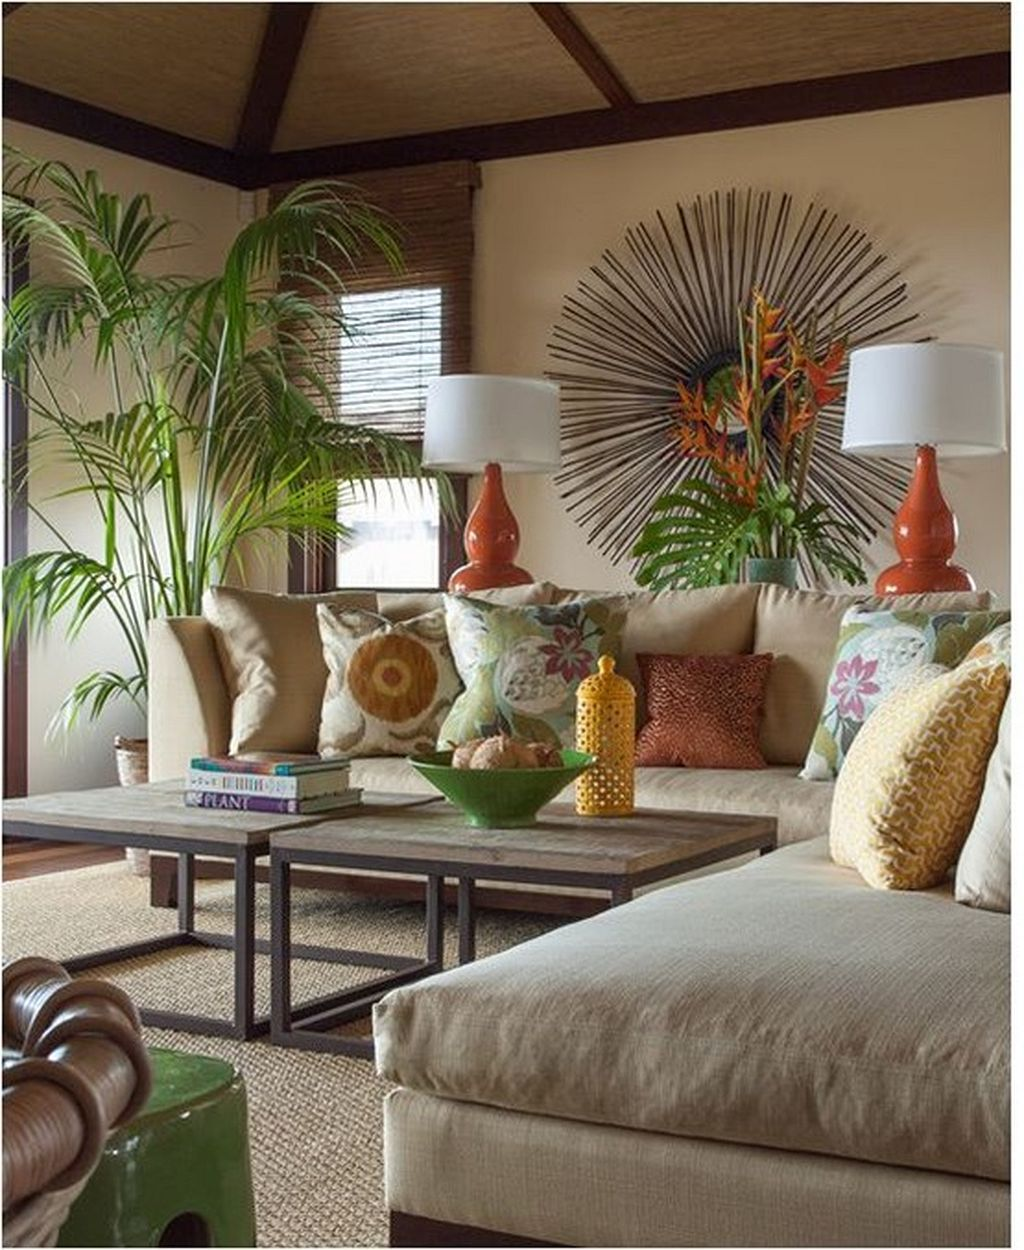 An Elegant Hawaiian Home Furnished With Neutral Decor Is The Perfect Spot  For A Tall Kentia Palm, Which Creates A Connection To The Lush Landscaping  ...